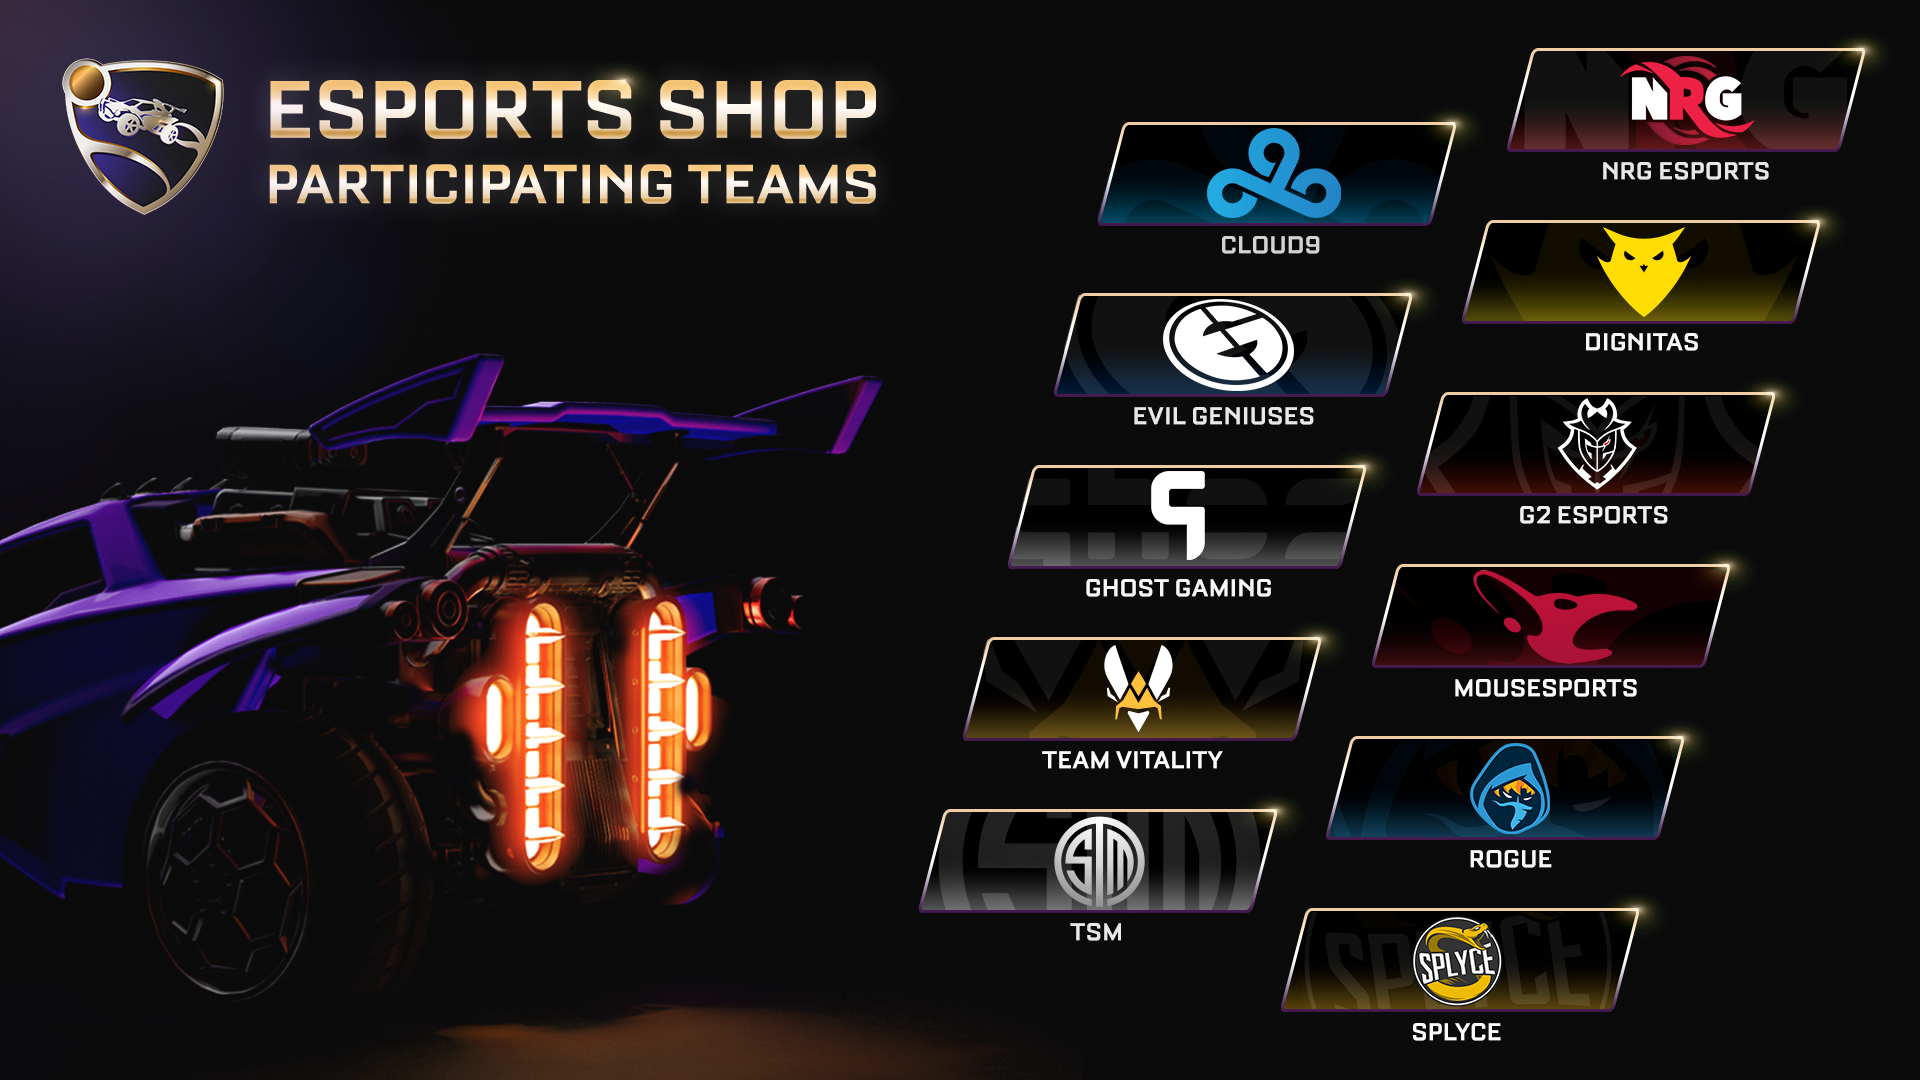 Rocket League Esports Shop